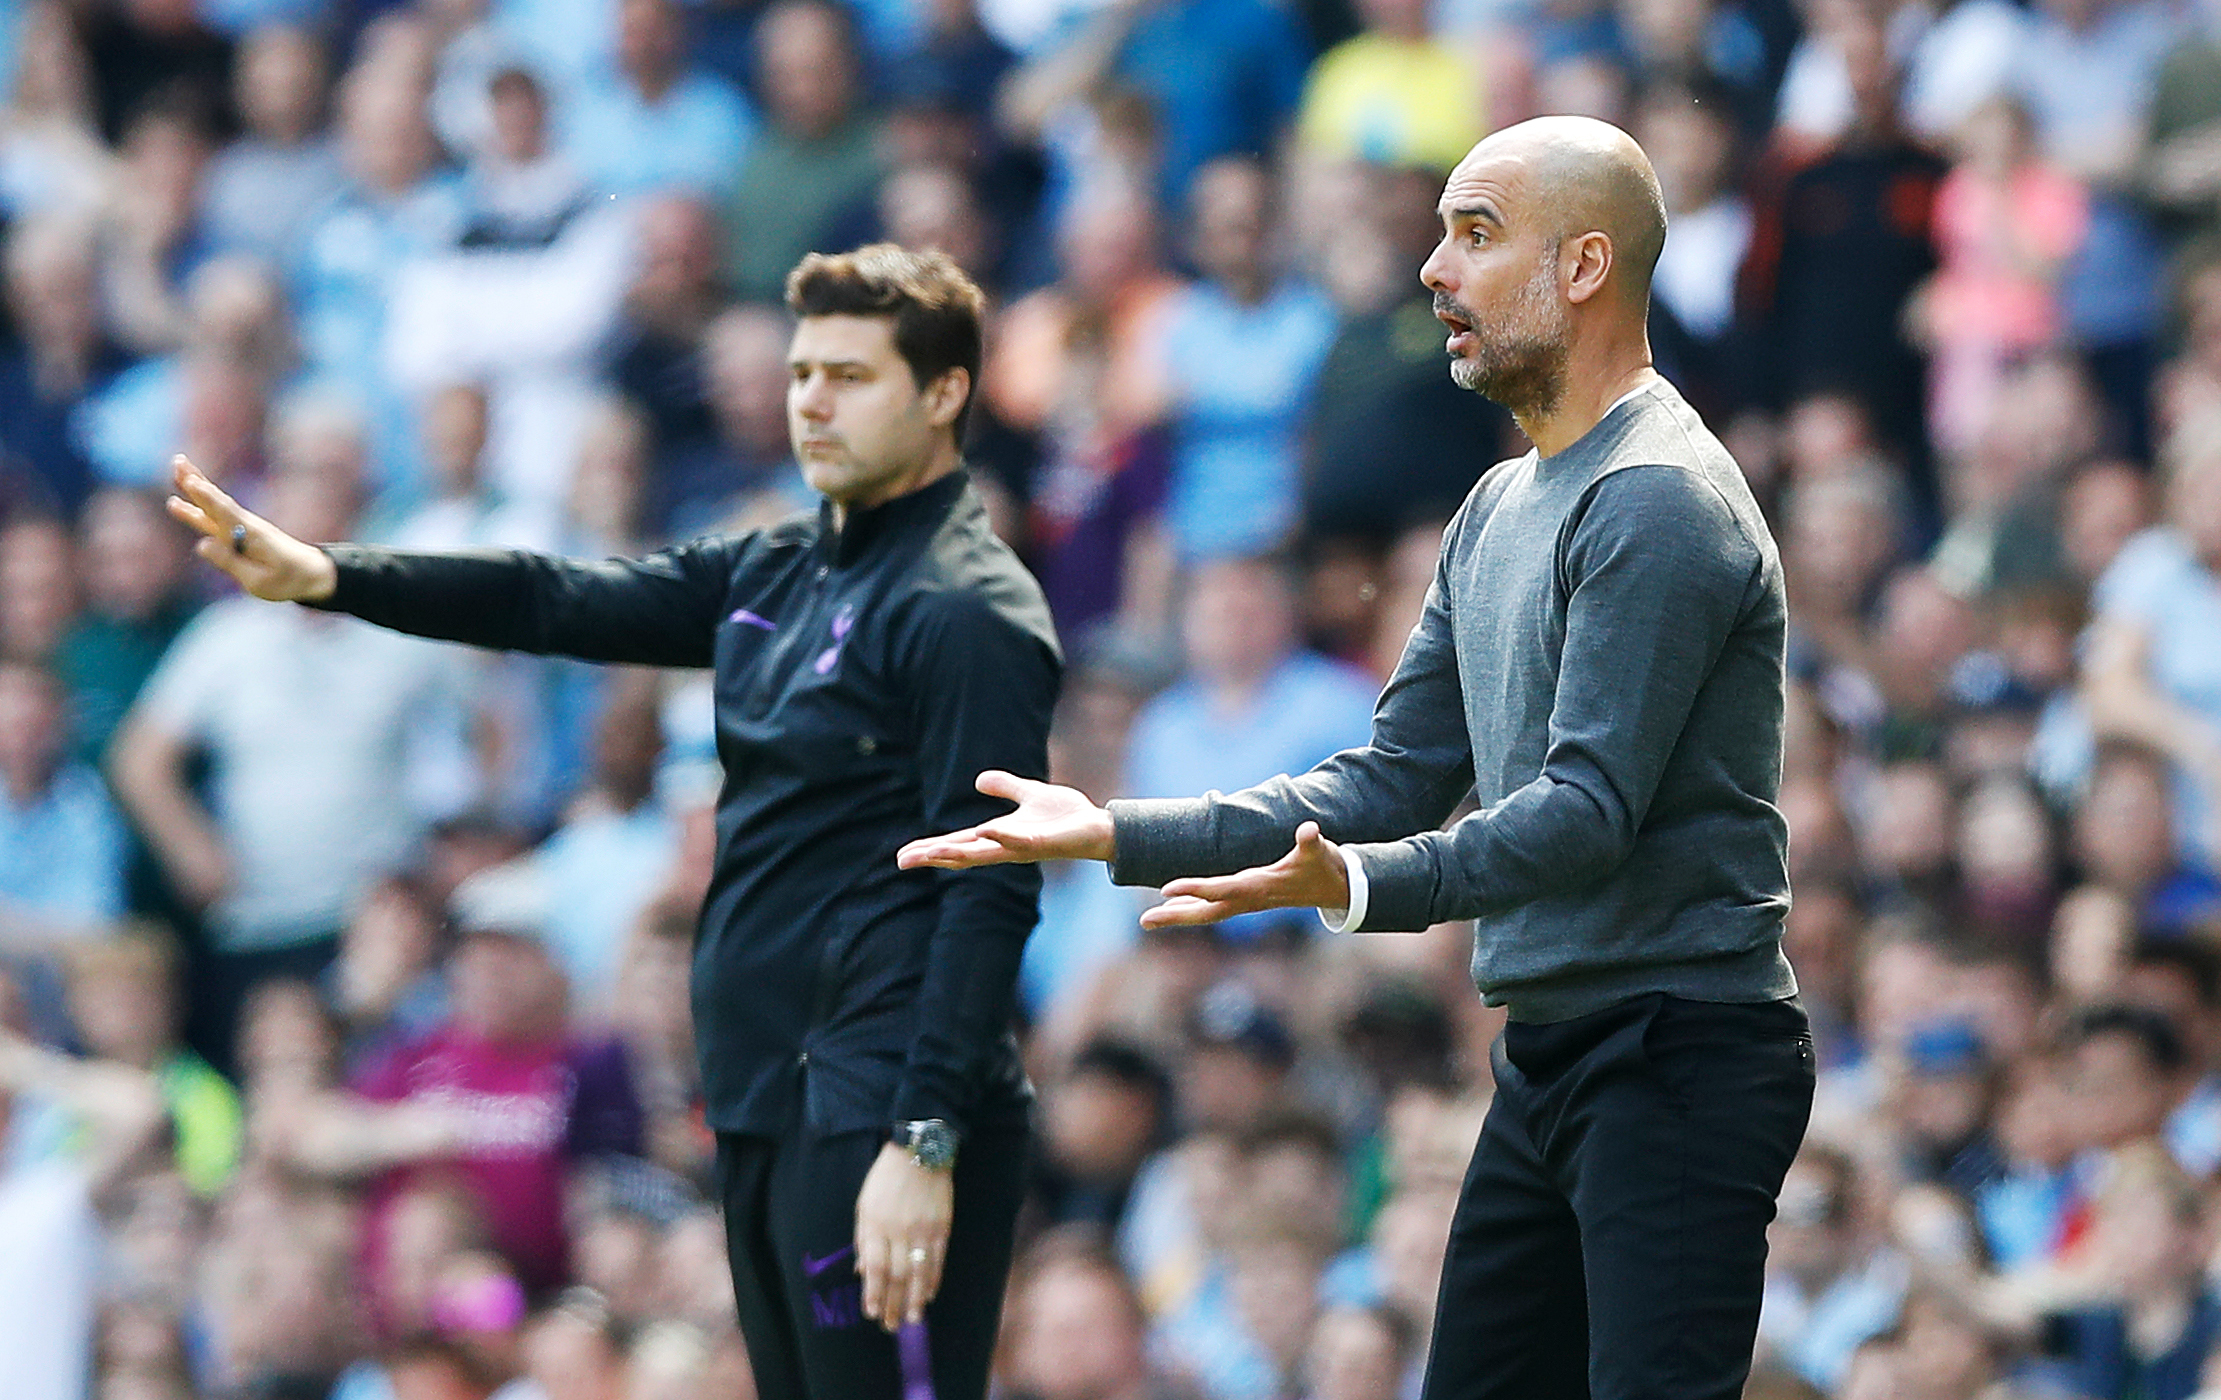 Tottenham Hotspur manager Mauricio Pochettino (left) and Manchester City manager Pep Guardiola on the touchline during the Premier League match at the Etihad Stadium, Manchester